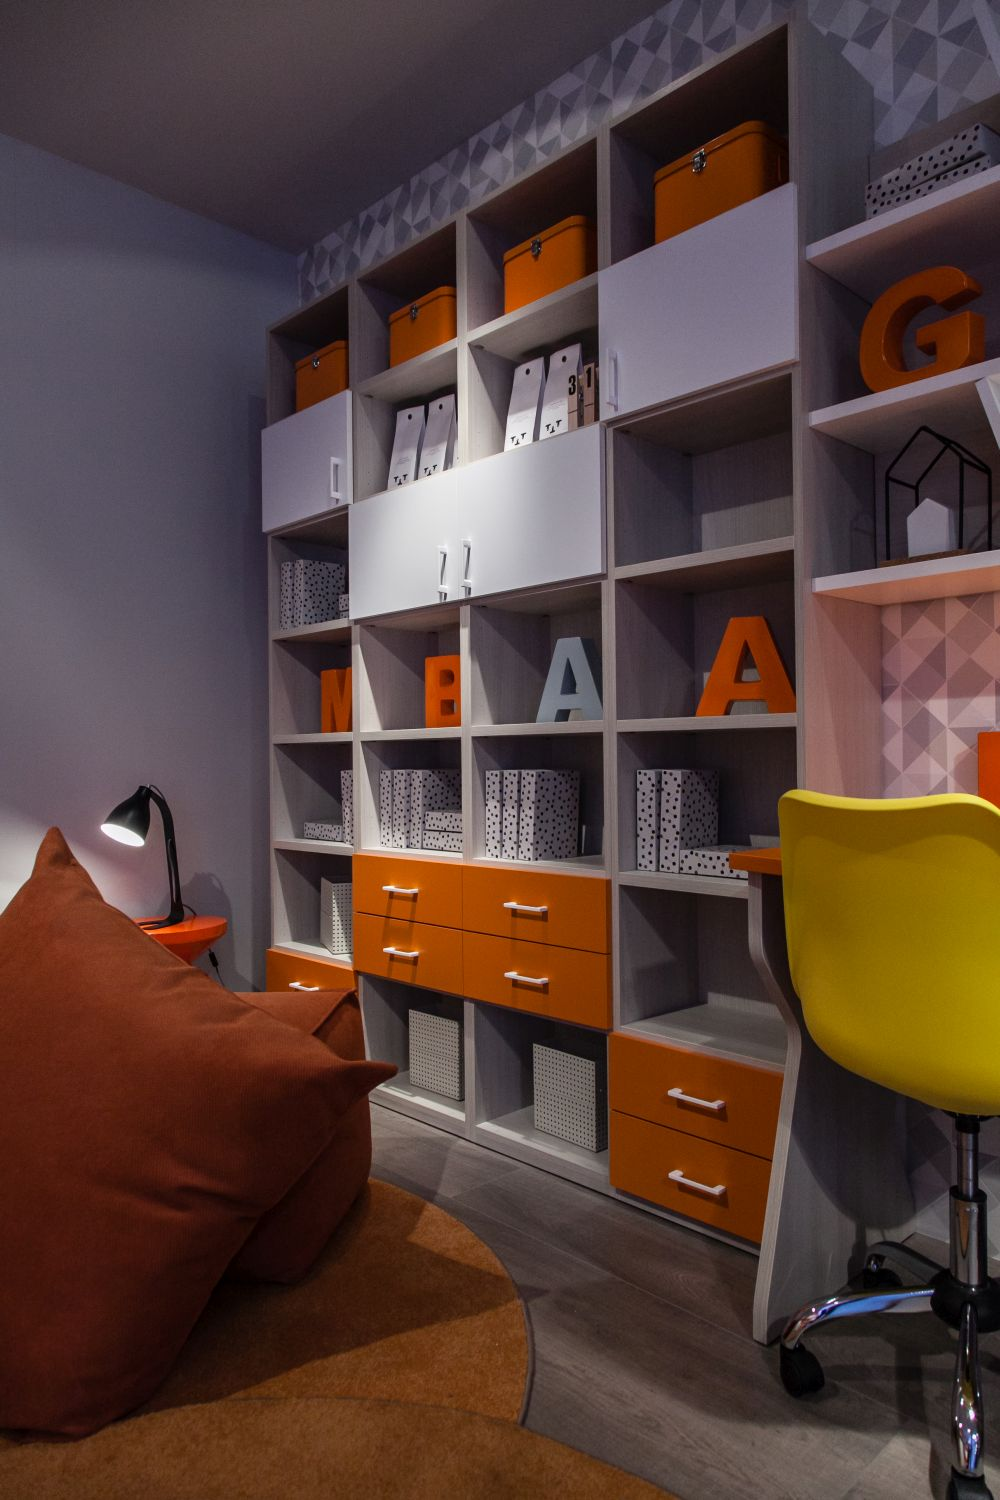 Bookcases are also great for storing and organizing documents and office supplies